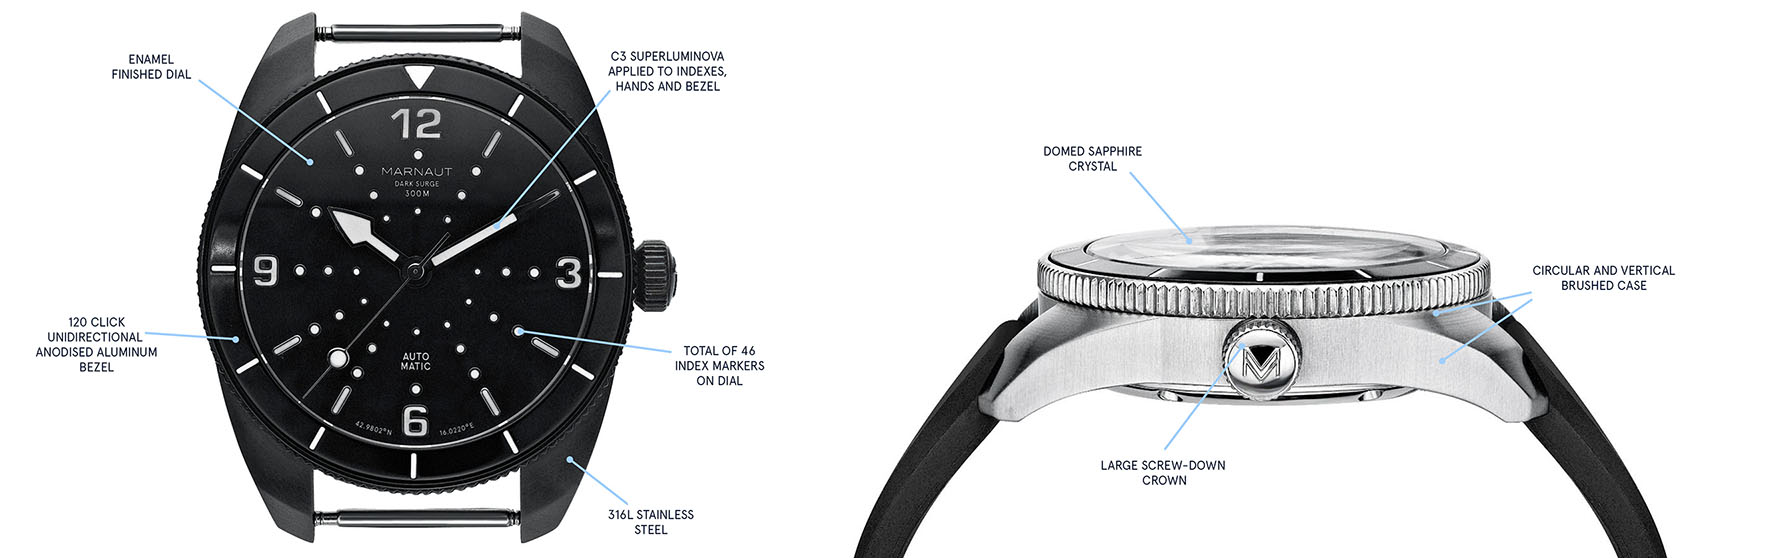 Marnaut watch technical details